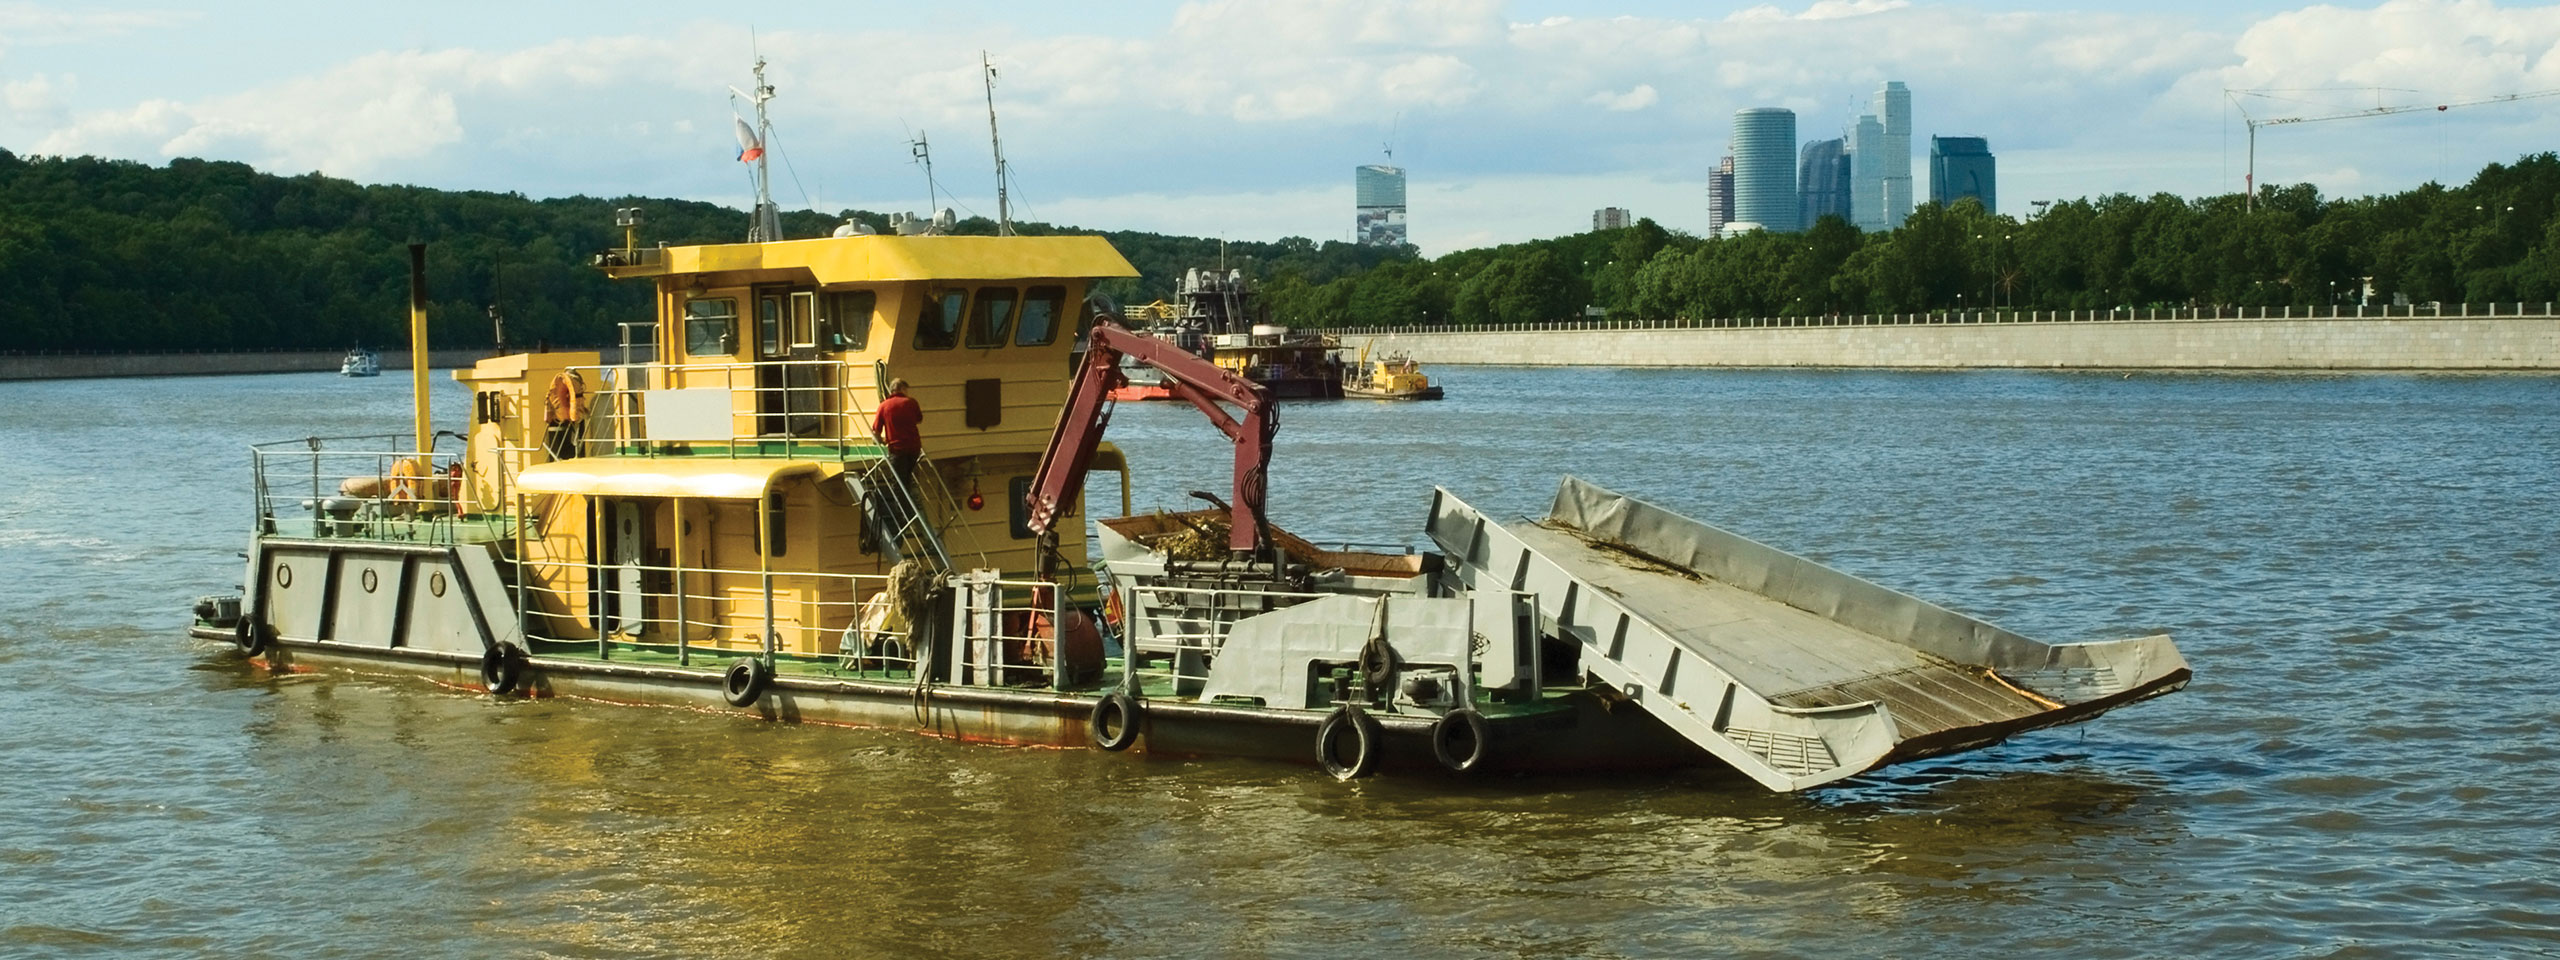 barge travaux grues jaunes